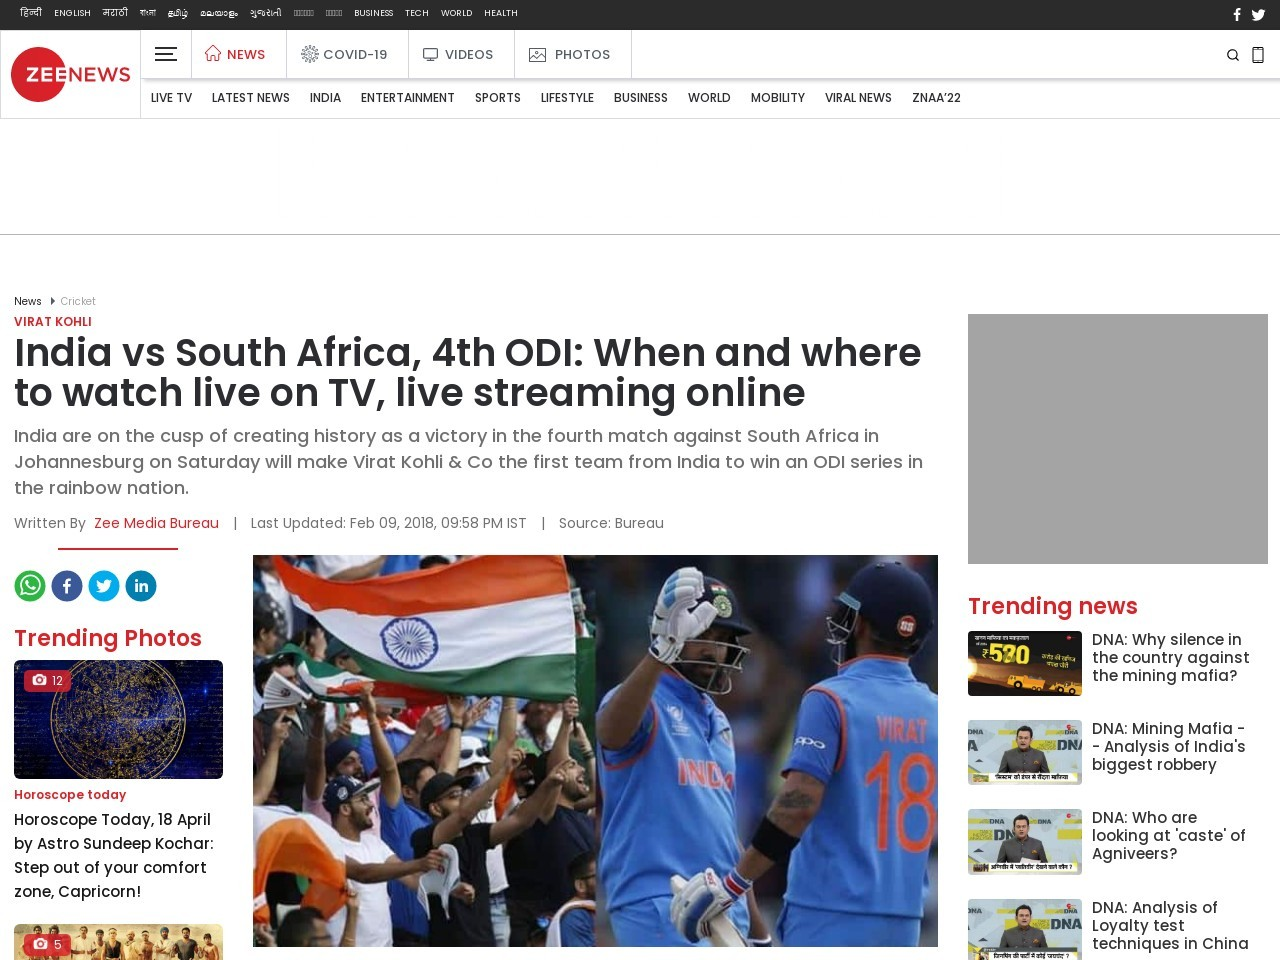 India vs South Africa, 4th ODI: When and where to watch live on TV, live streaming online